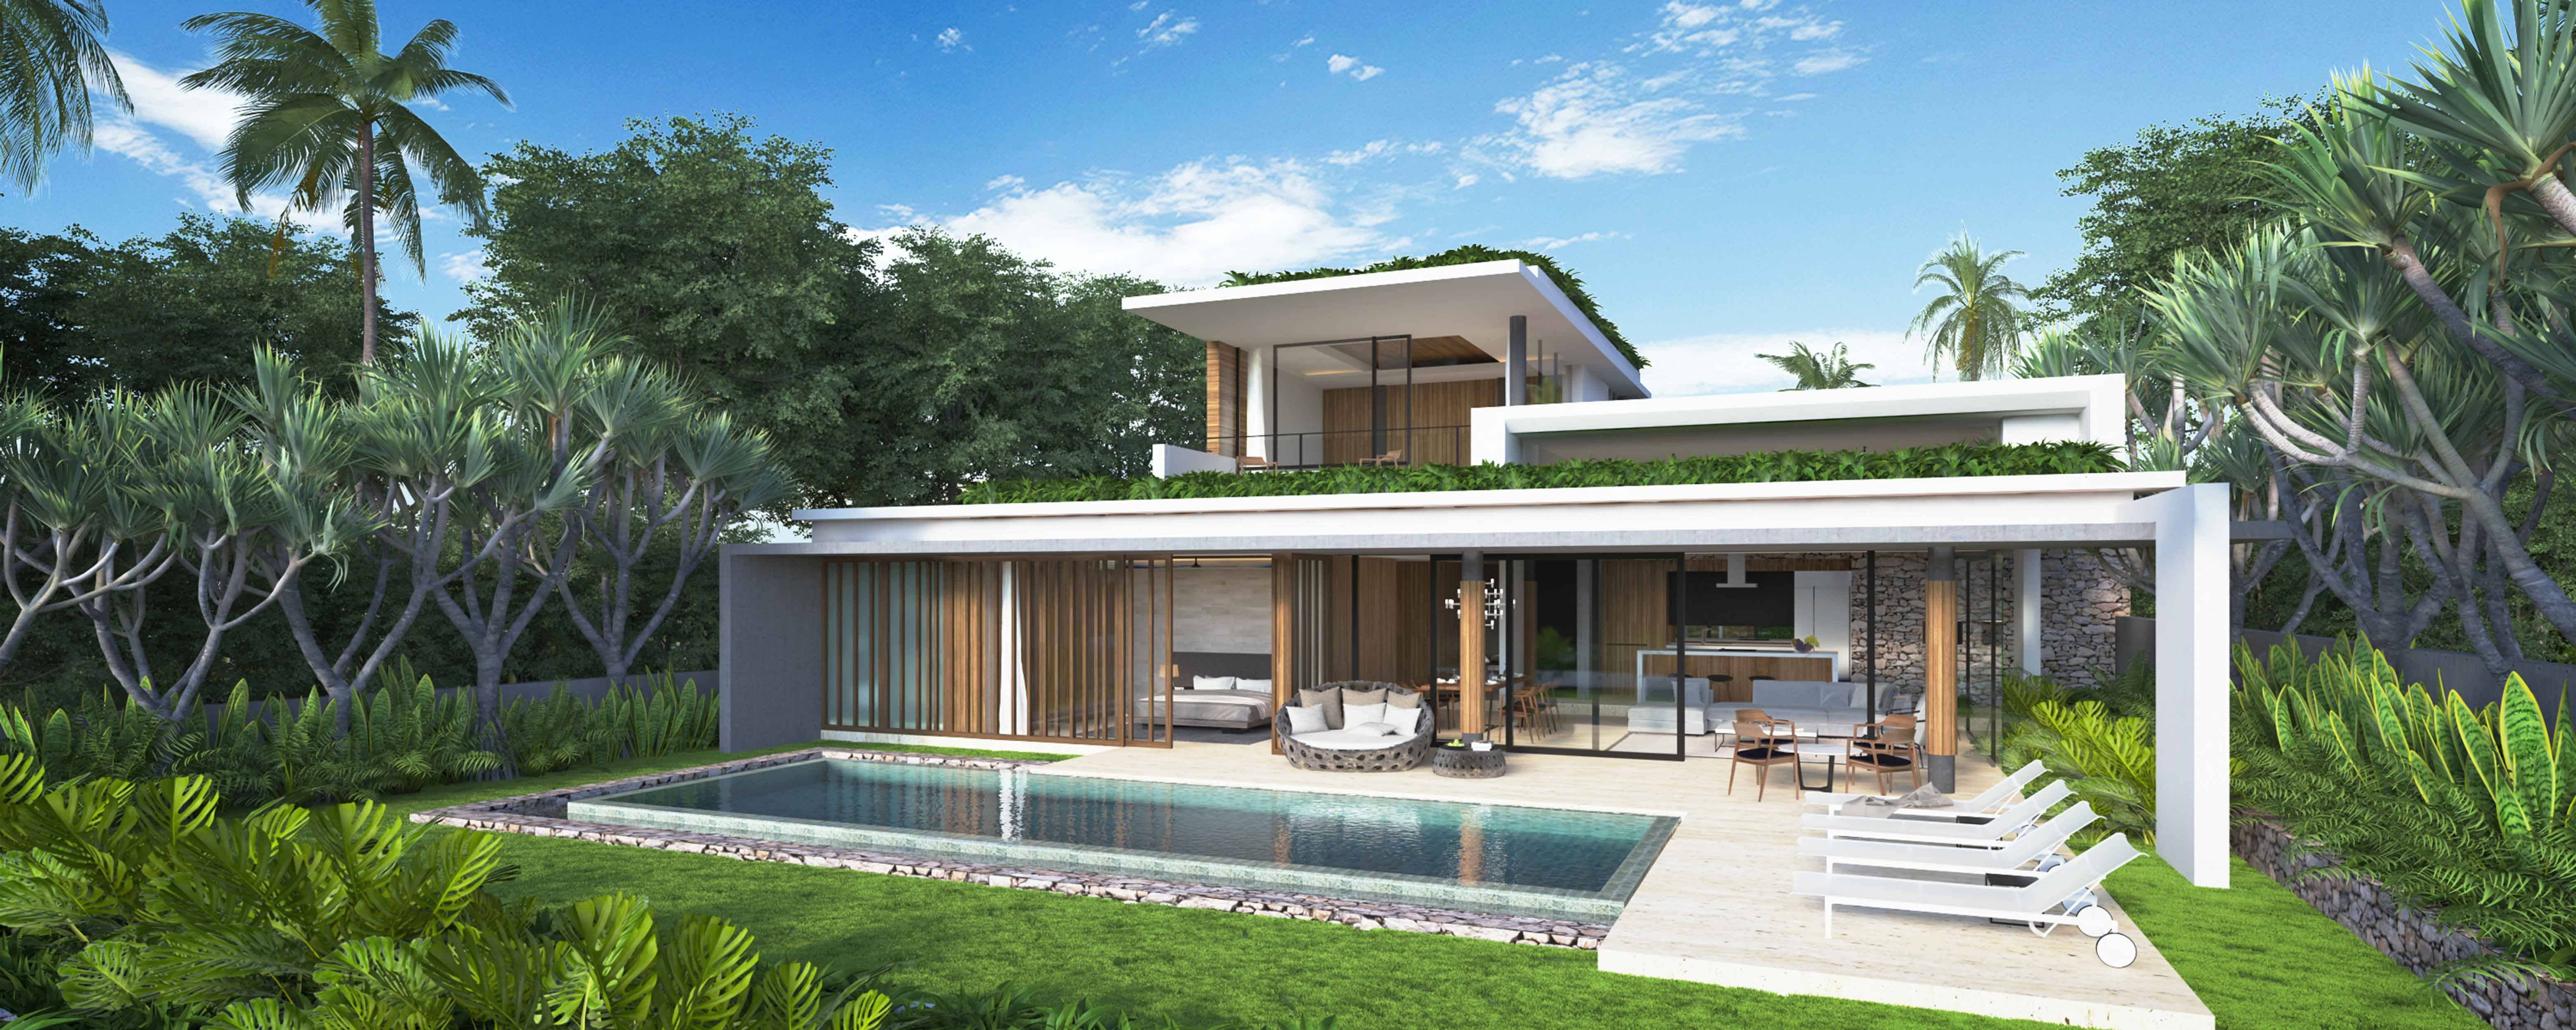 Projects Photo/Sunplay Lifestyle Bangsaray Thailand/sunplay-lifestyle-villa-d1-